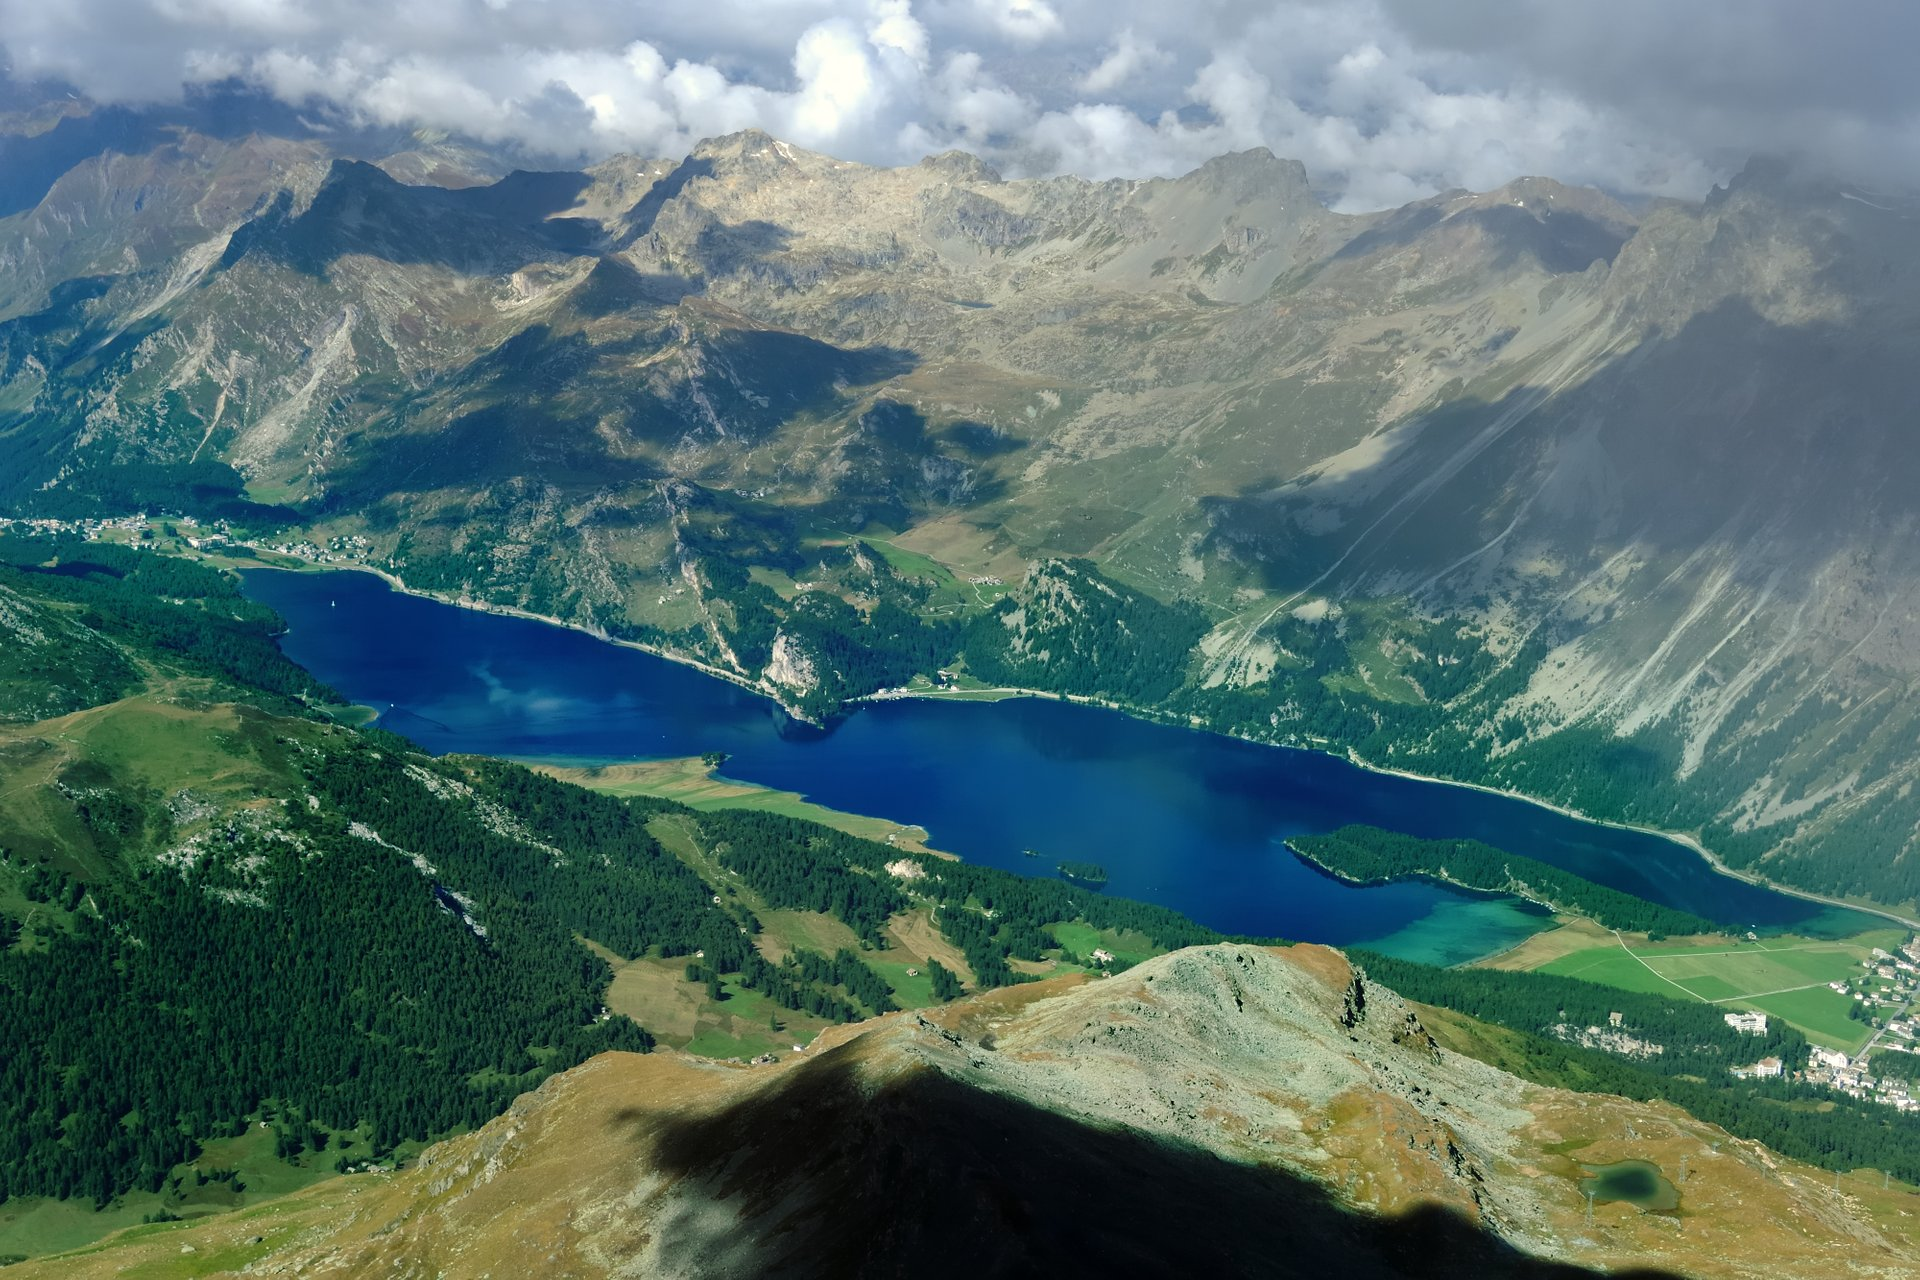 Lake Sils from Piz Corvatsch 2019